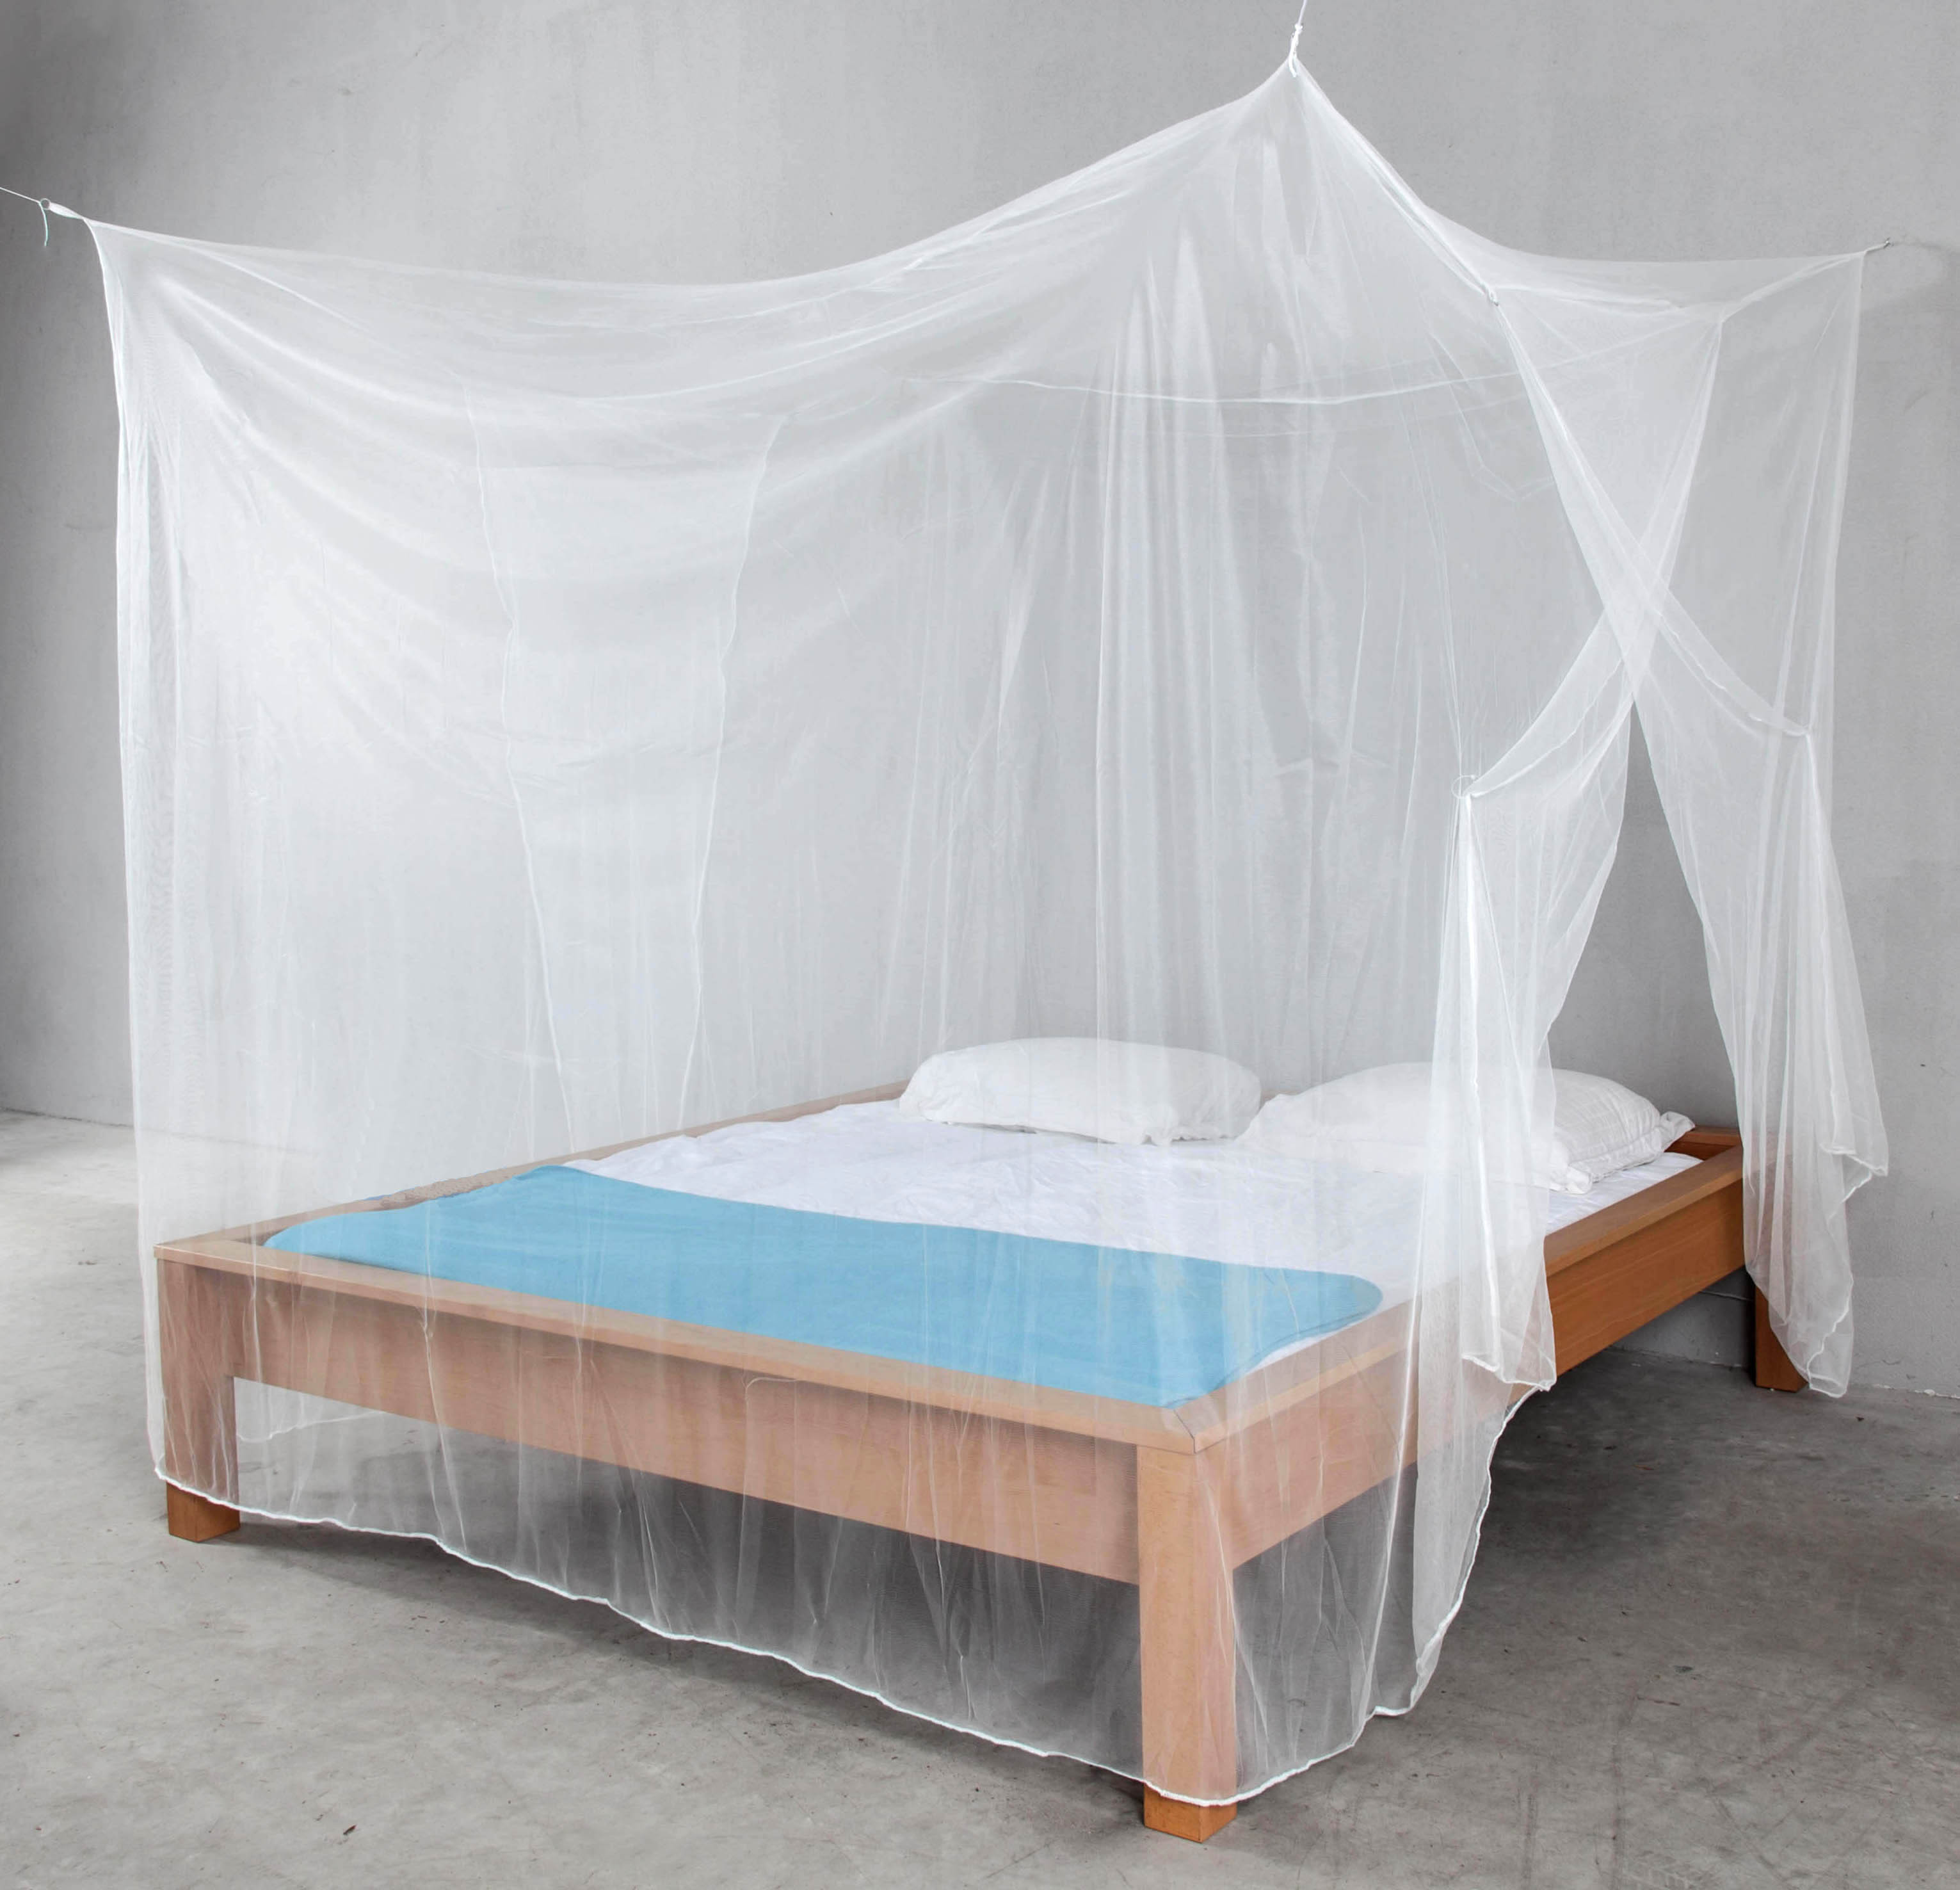 US distributes 630,000 insecticide treated bed nets